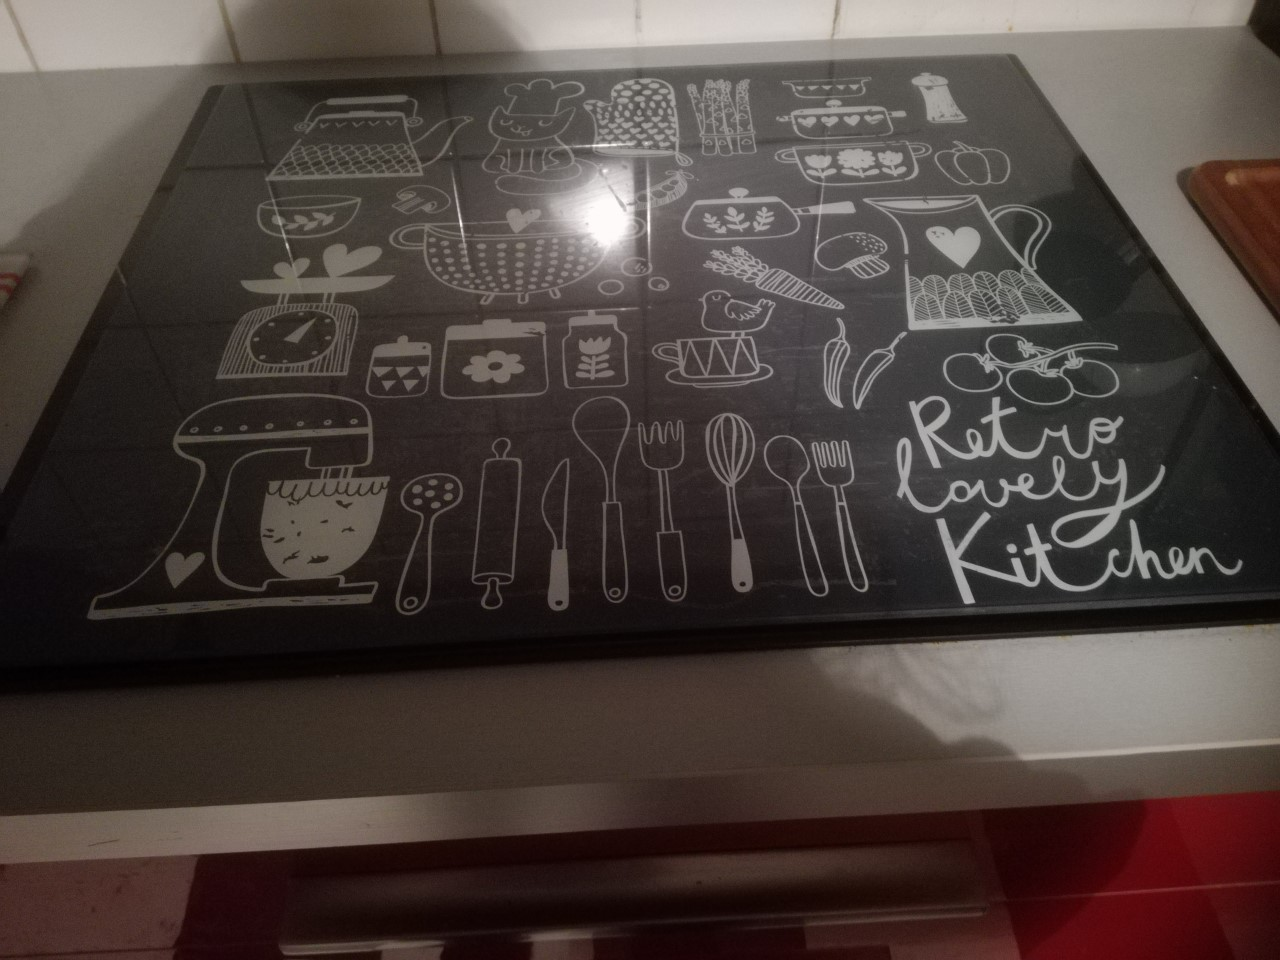 Dessus De Cuisiniere Vitroceramique ❤ my little world ❤: protection plaque vitrocéramique